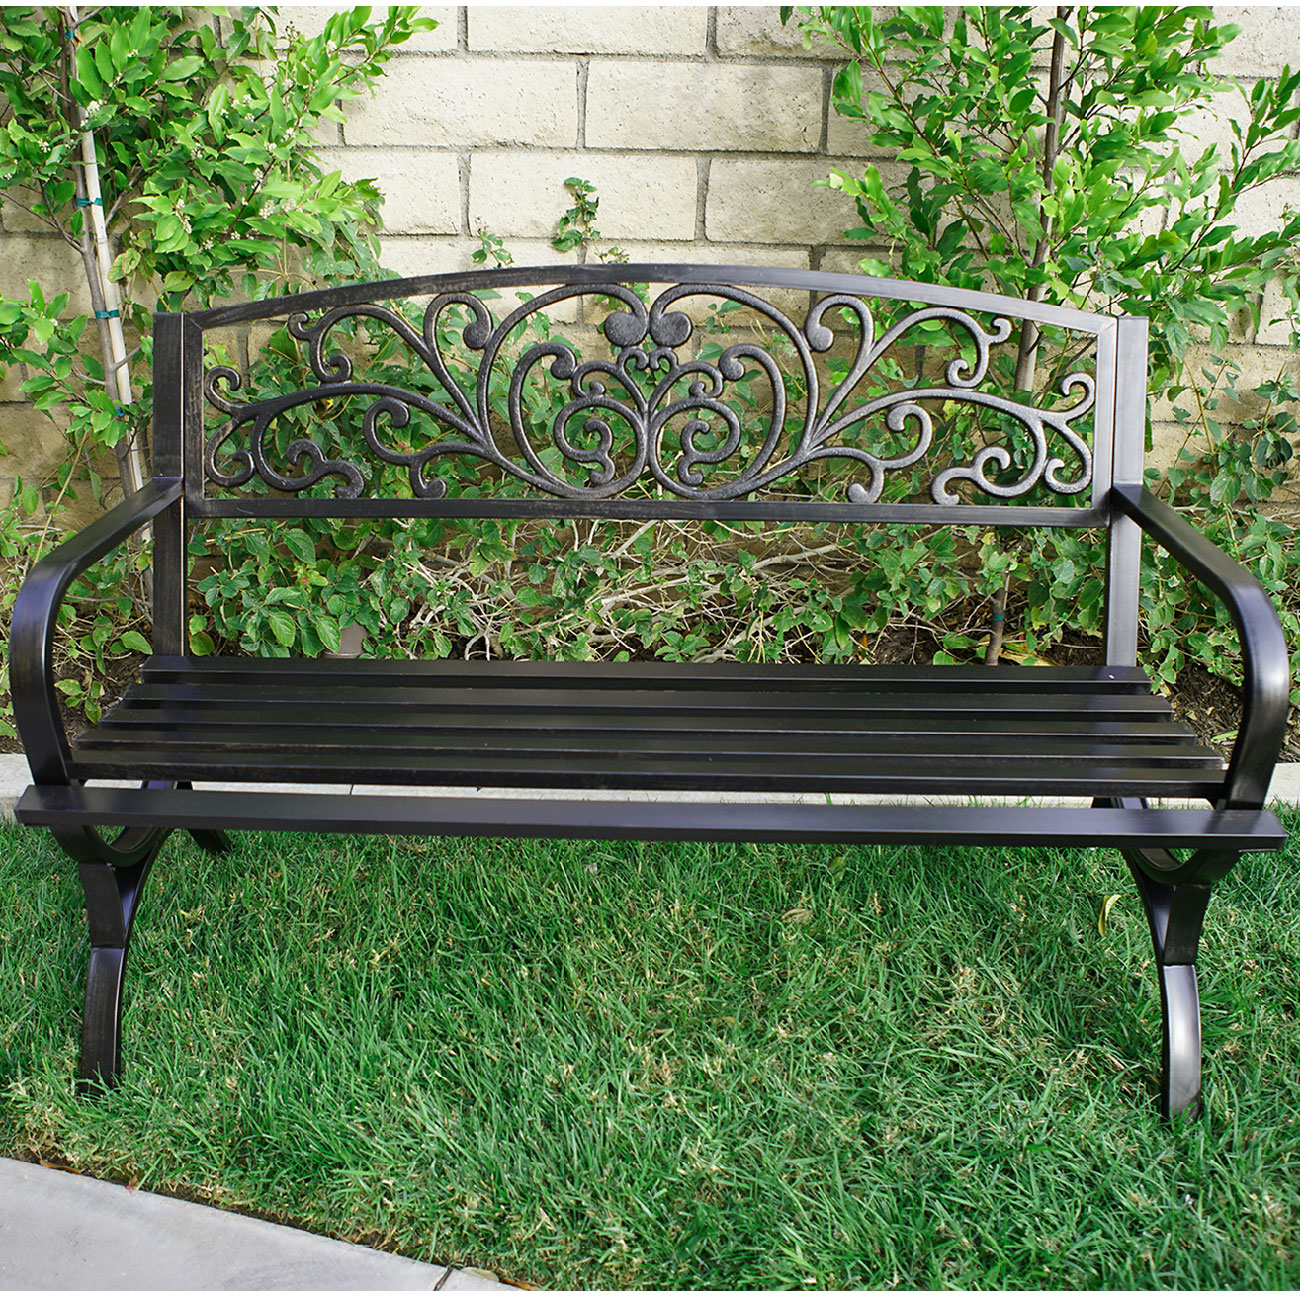 Outdoor Metal Bench Garden Patio Furniture Seat Yard Porch Park Backyard D Cor